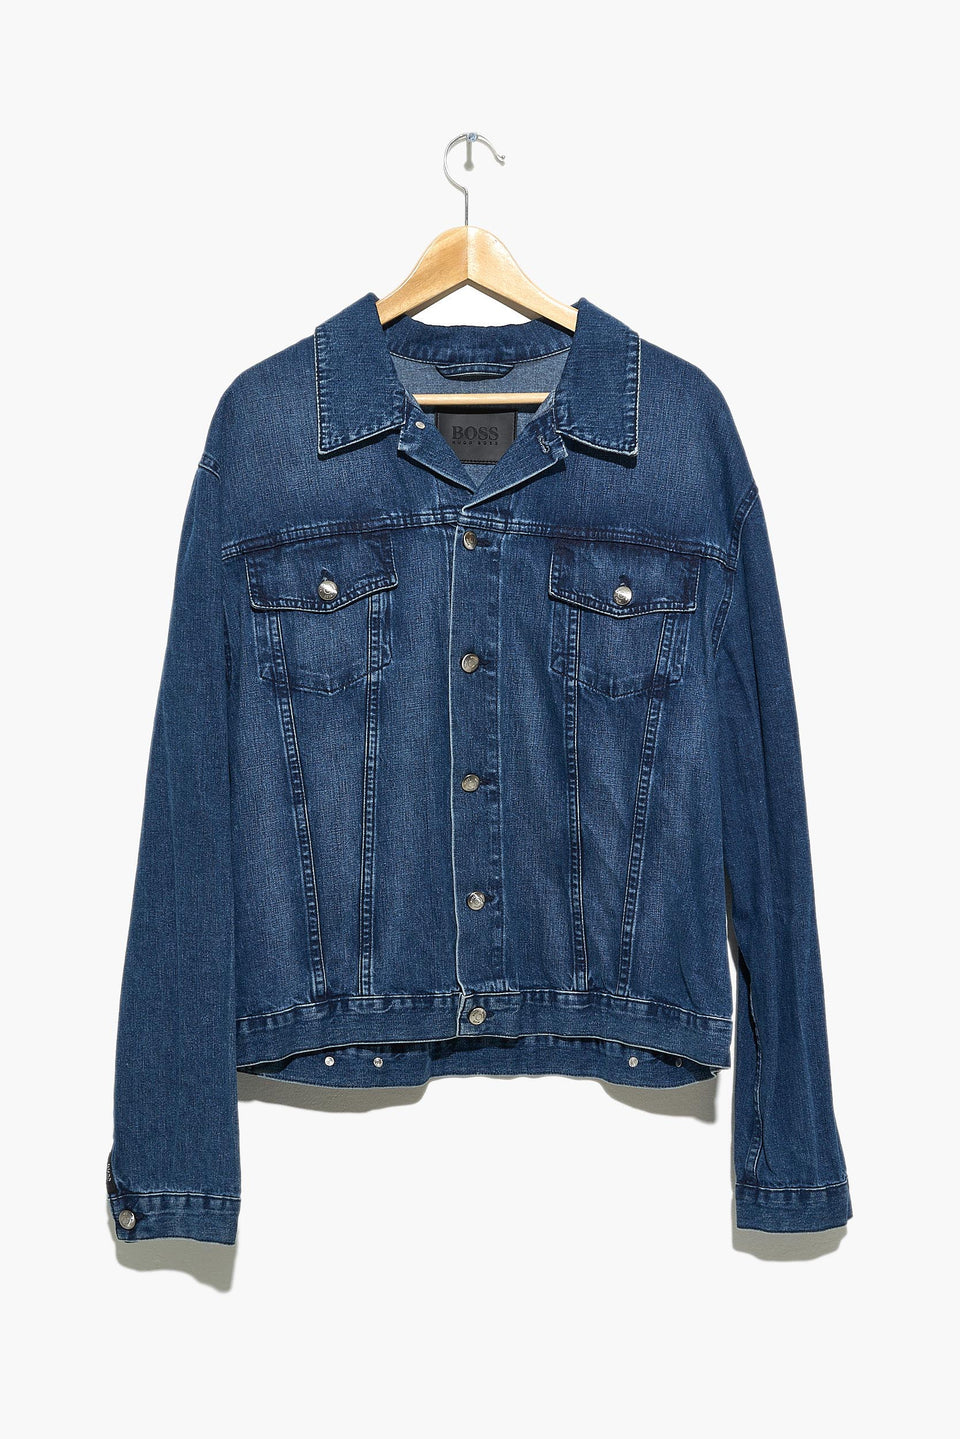 c HUGO BOSS denim jacket